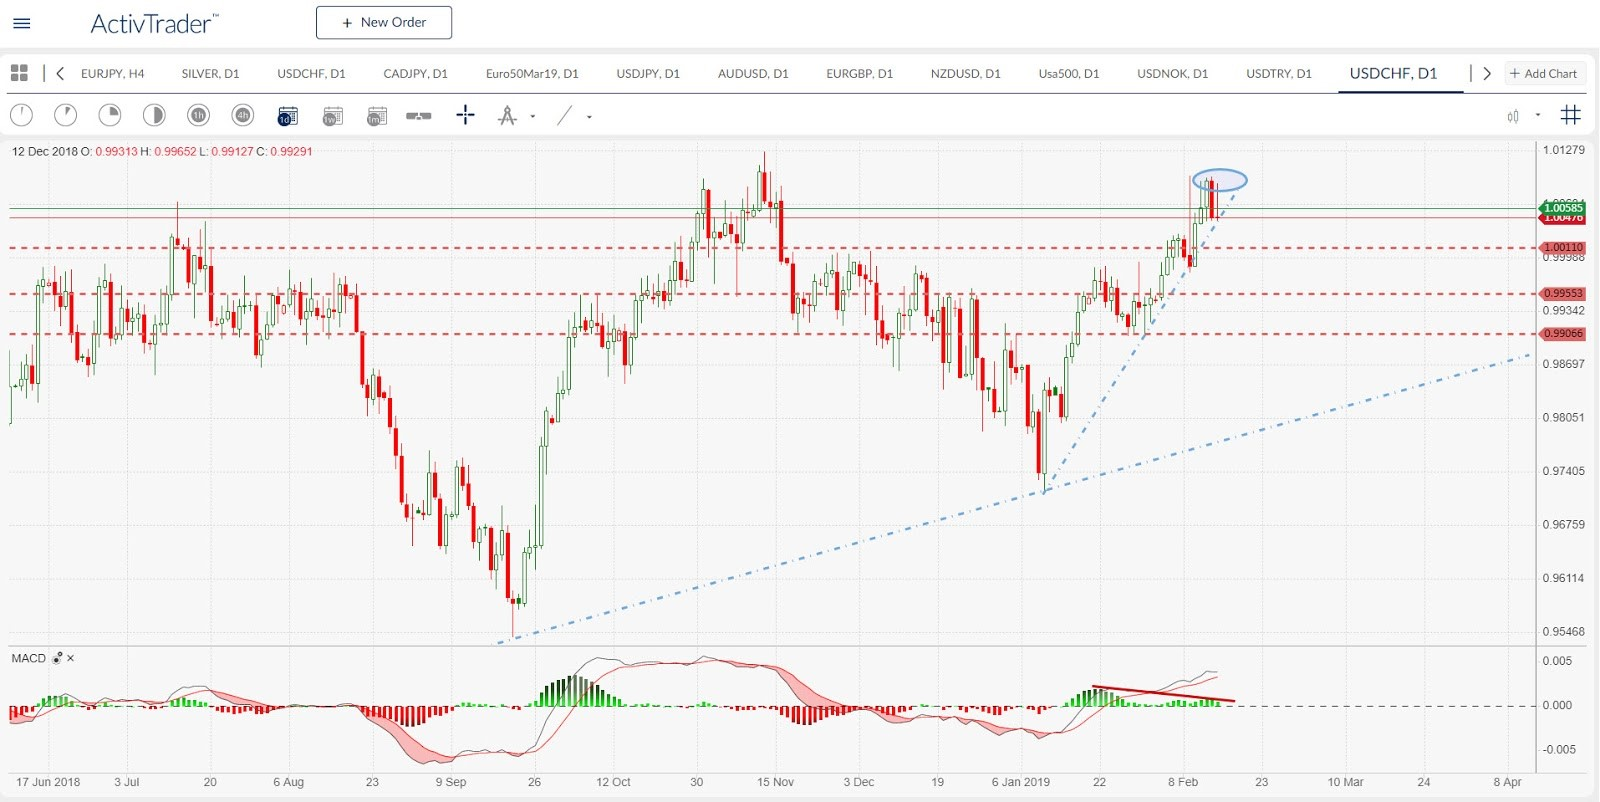 USD/CHF Daily Chart   Source: ActivTrader